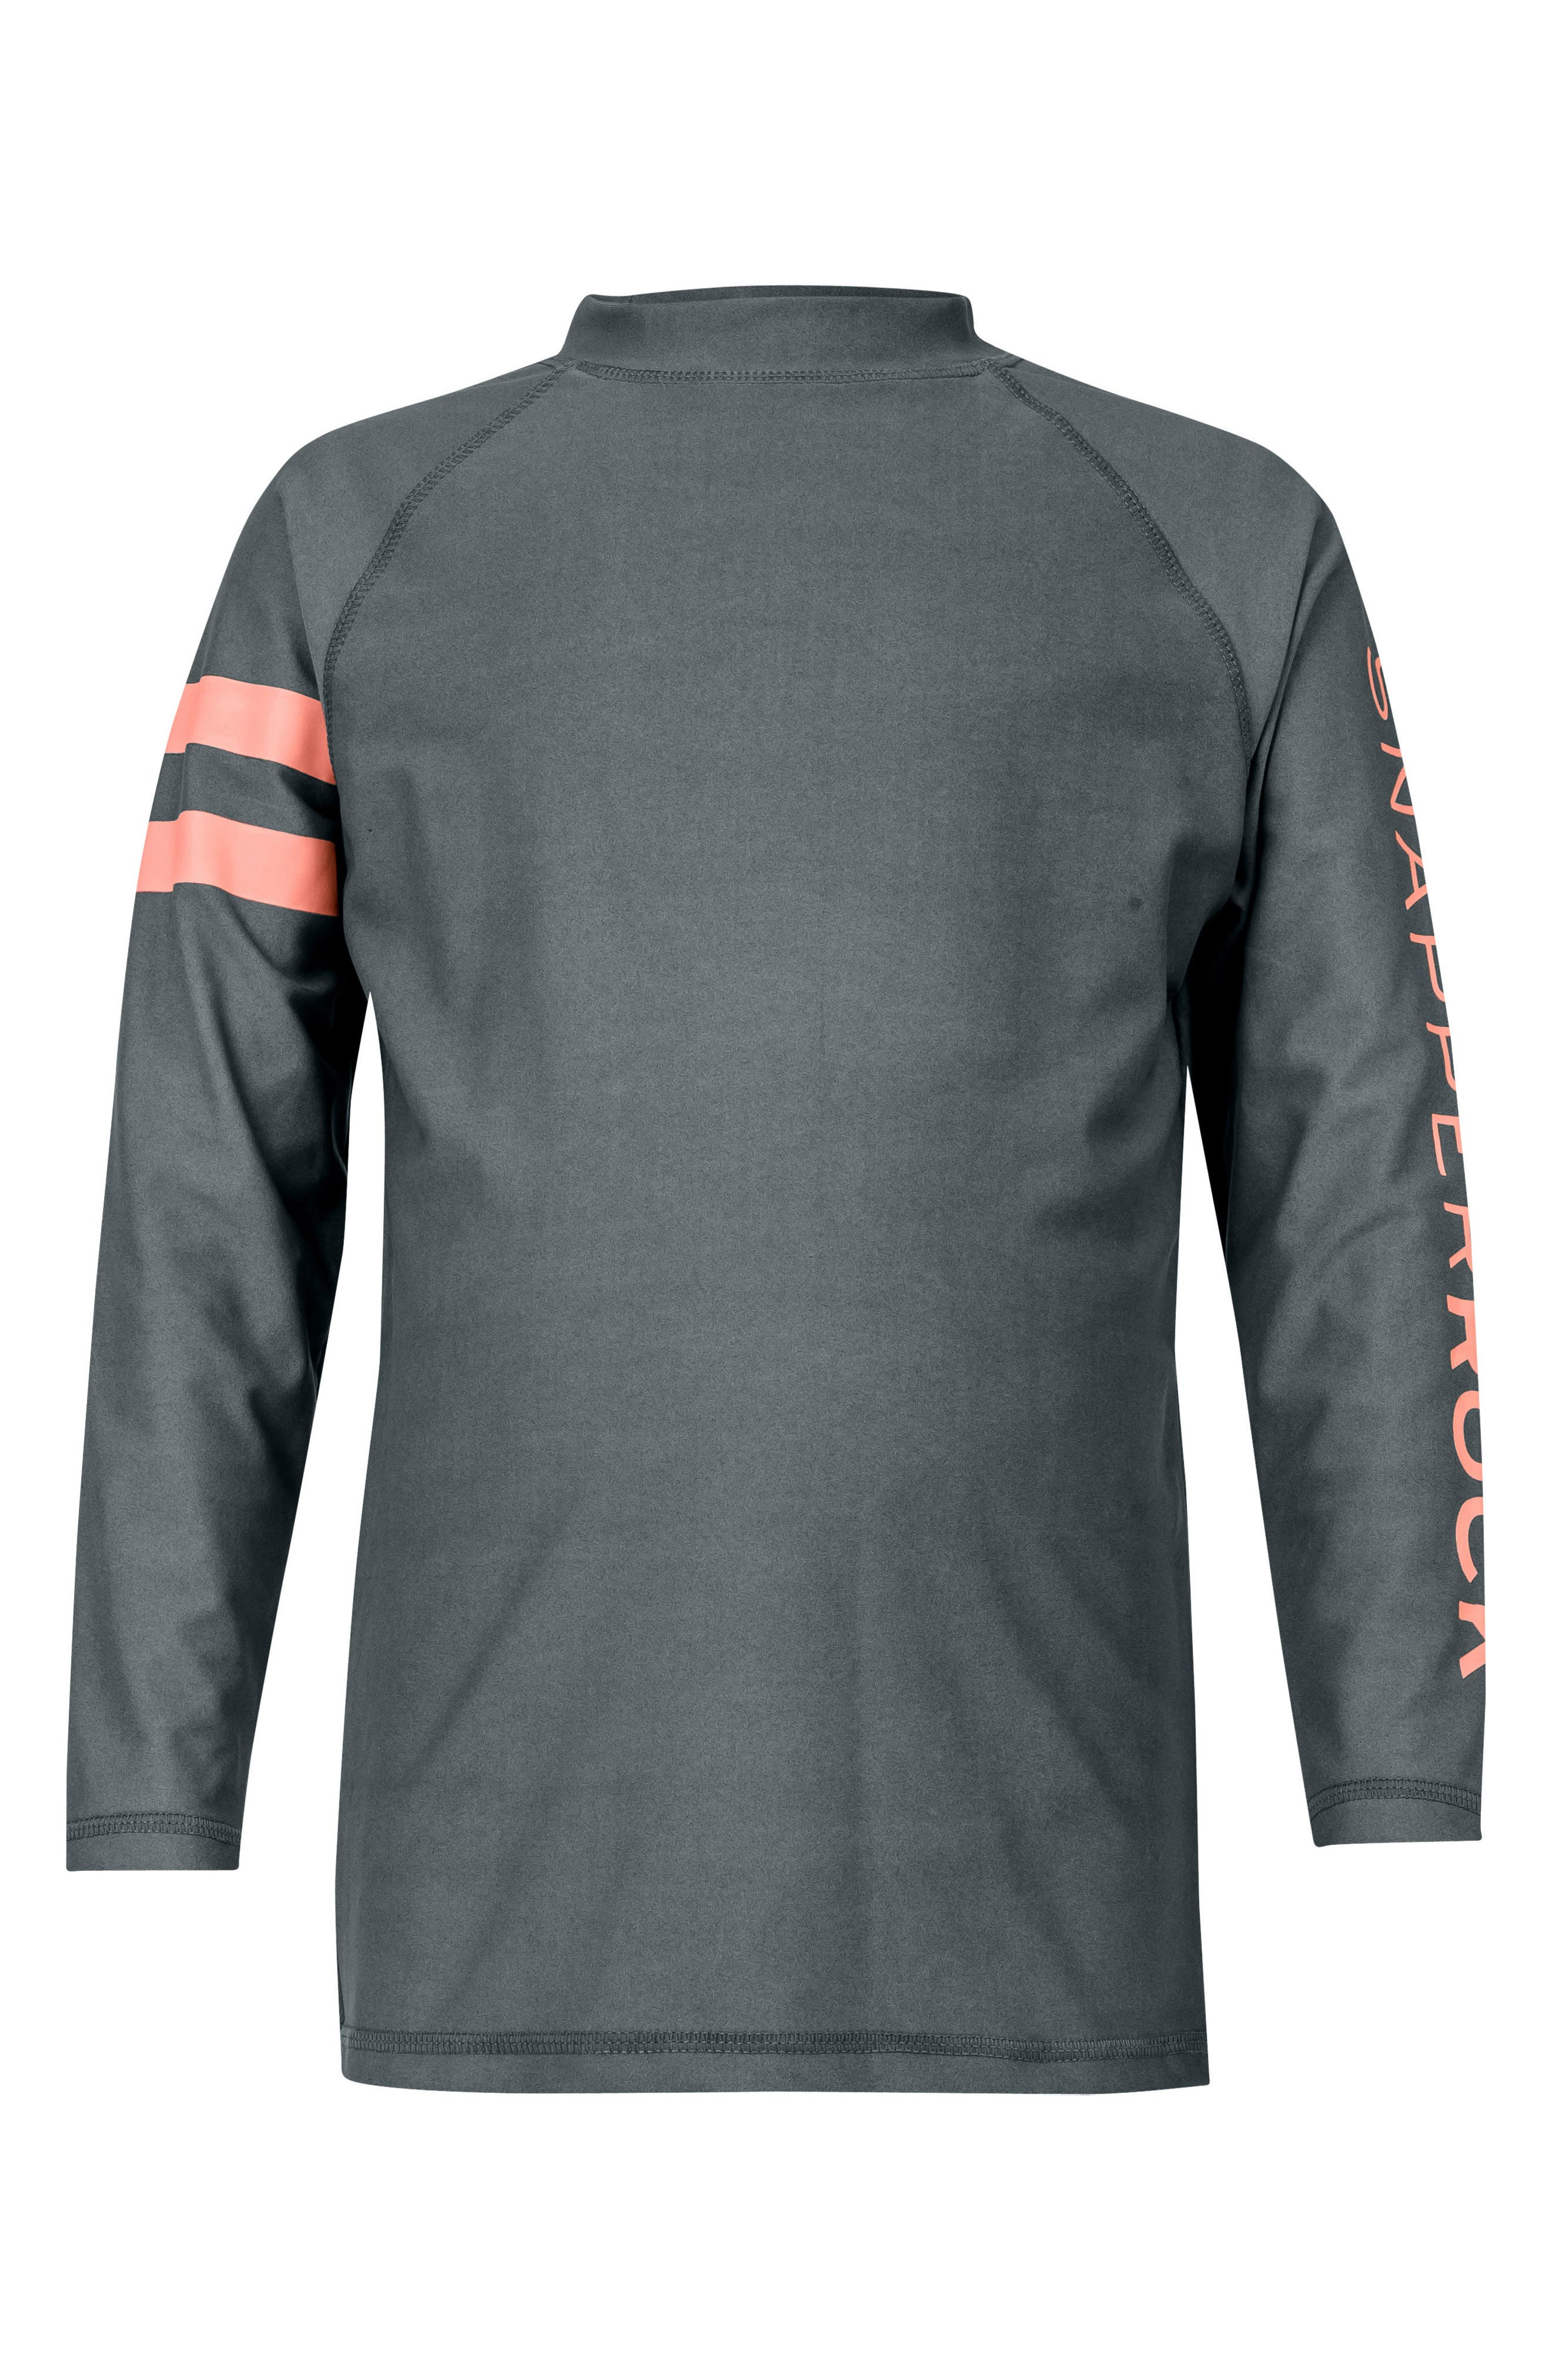 Raglan Long Sleeve Rashguard,                             Main thumbnail 1, color,                             Steel Grey/ Coral Stripe